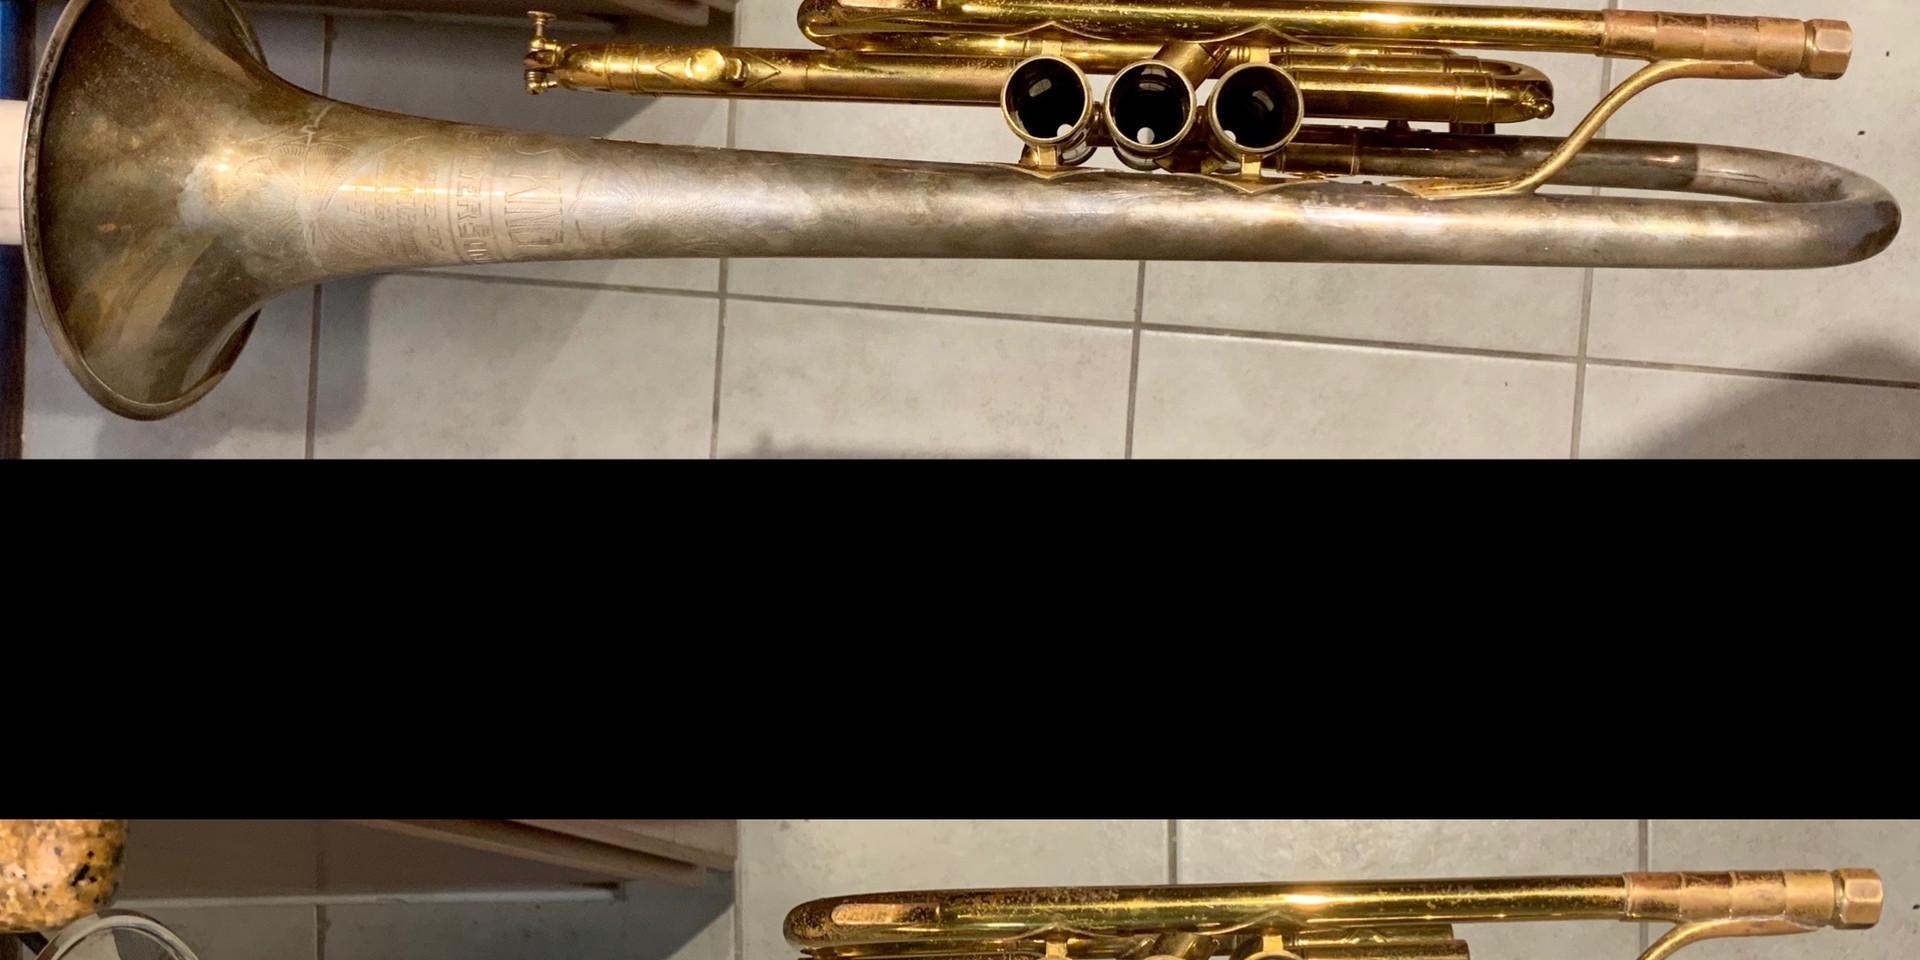 Before and after polishing